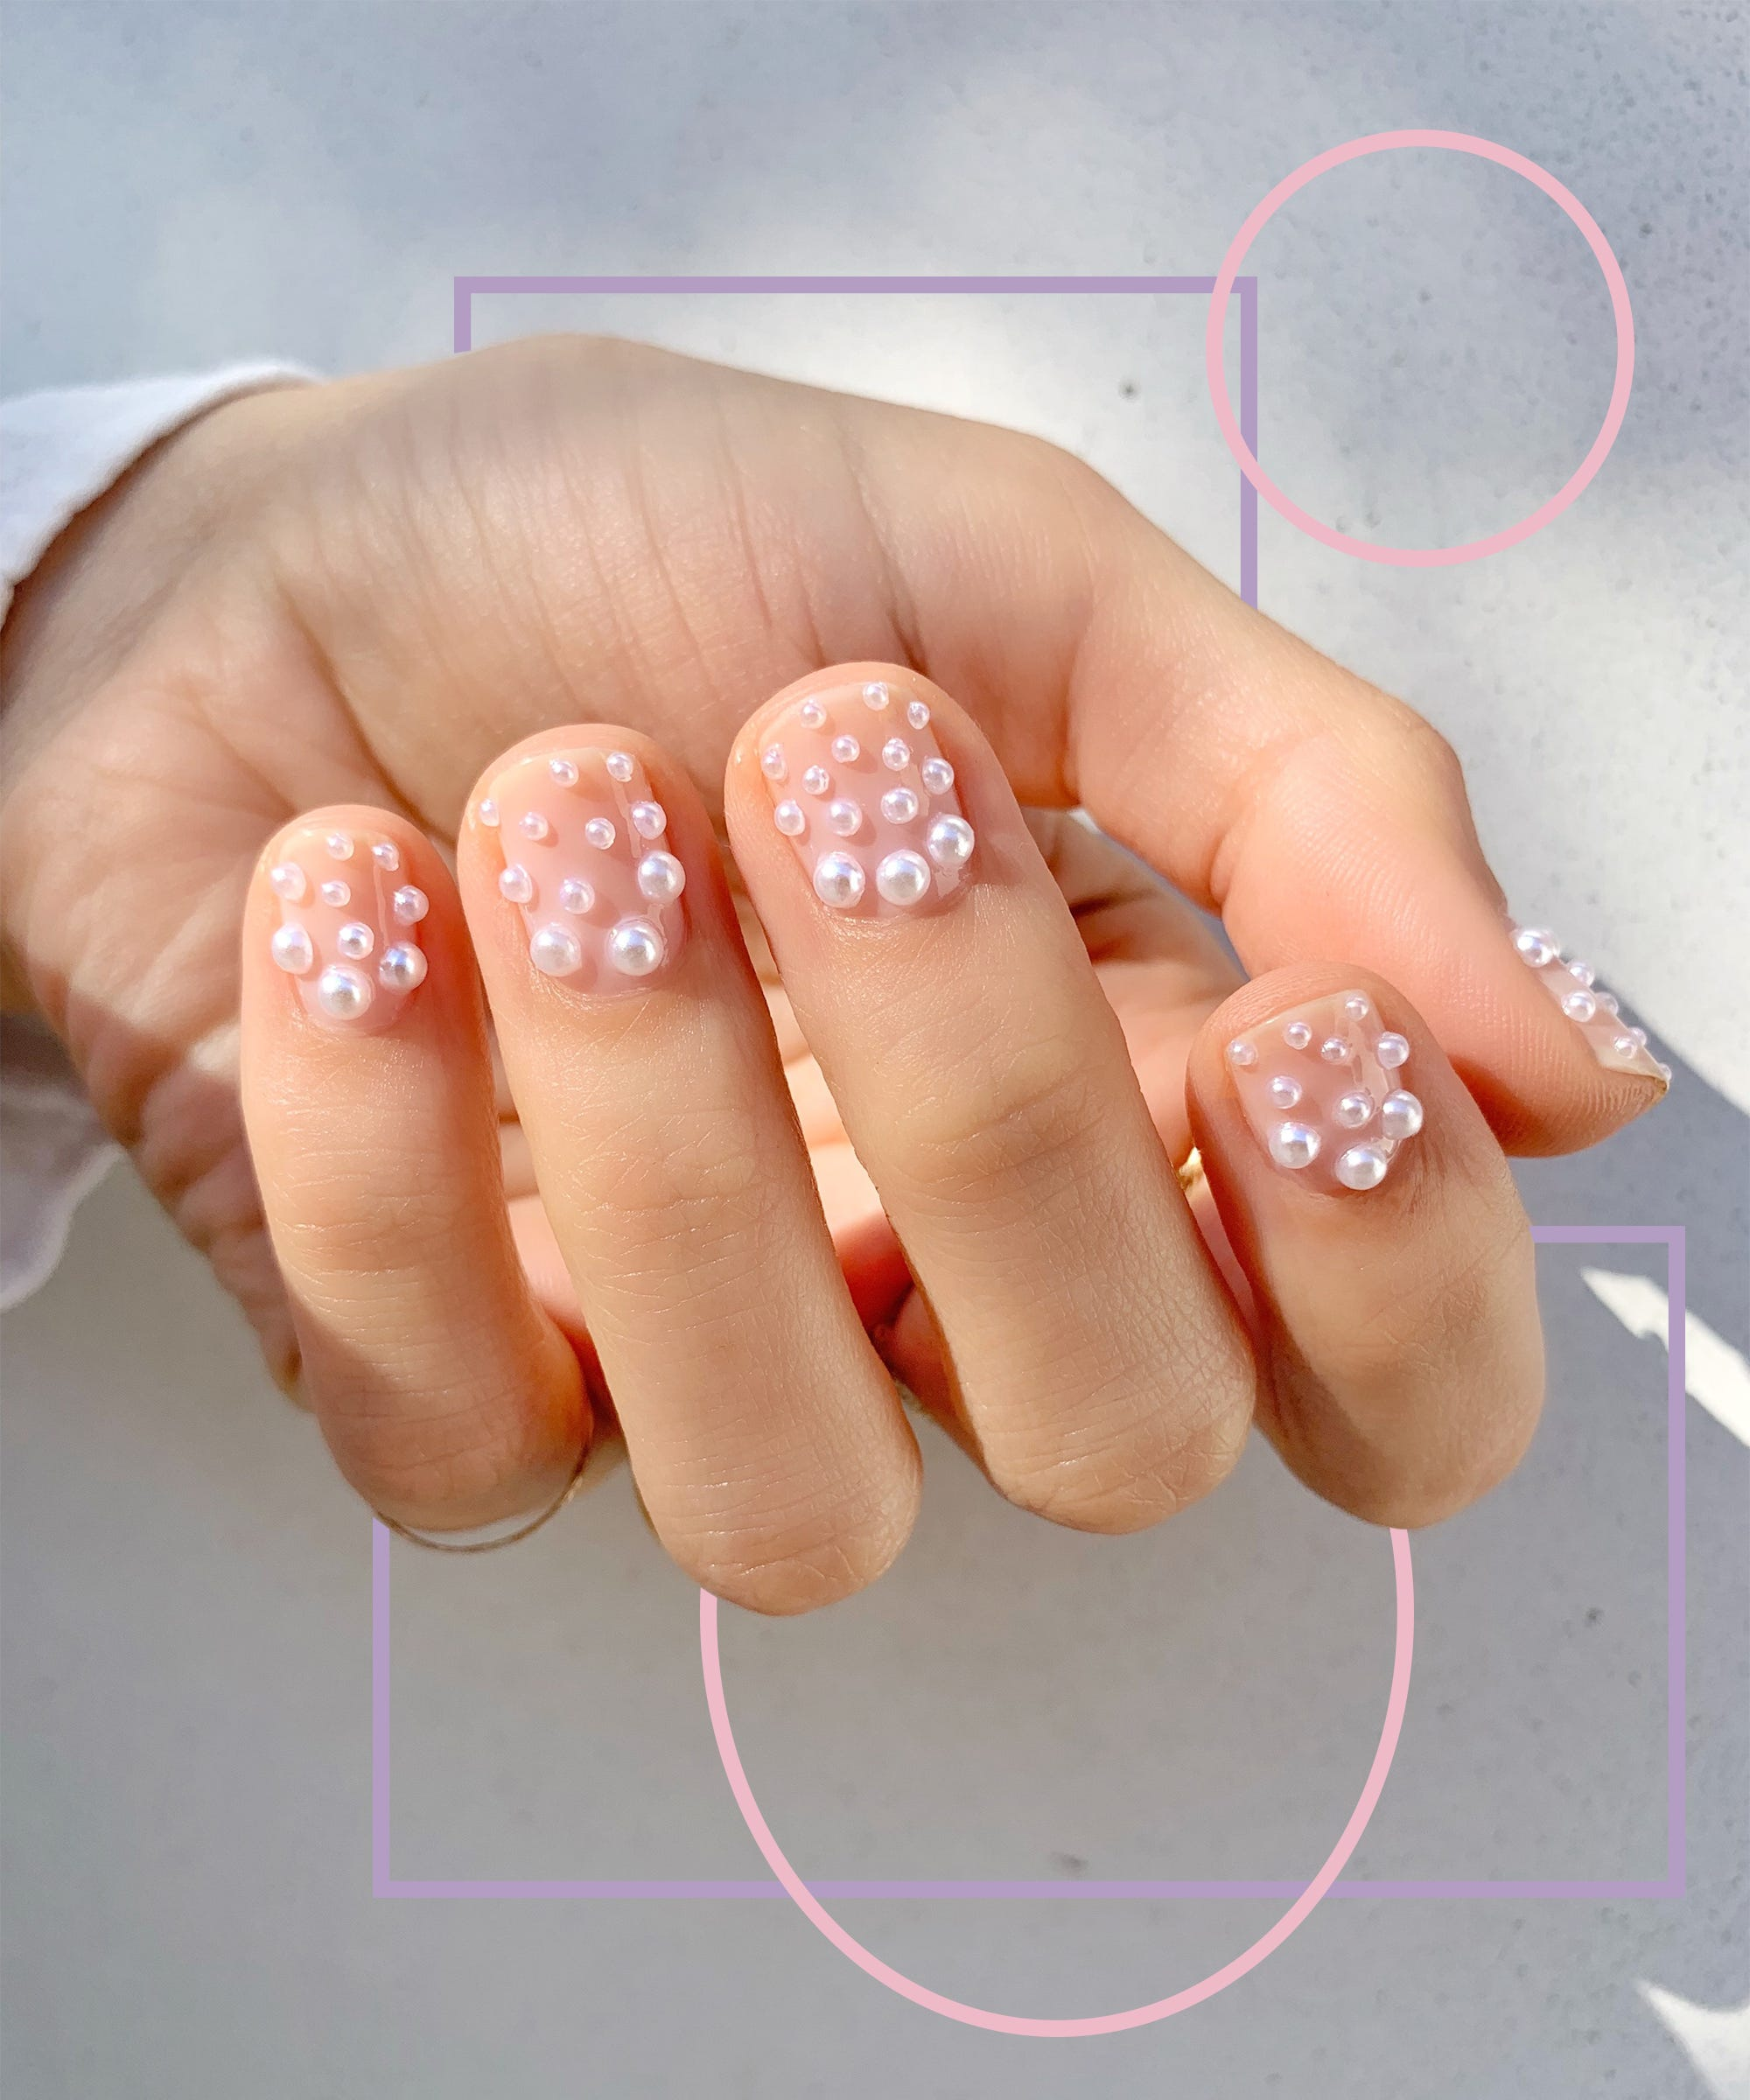 Best Nail Artists Manicurists To Follow On Instagram